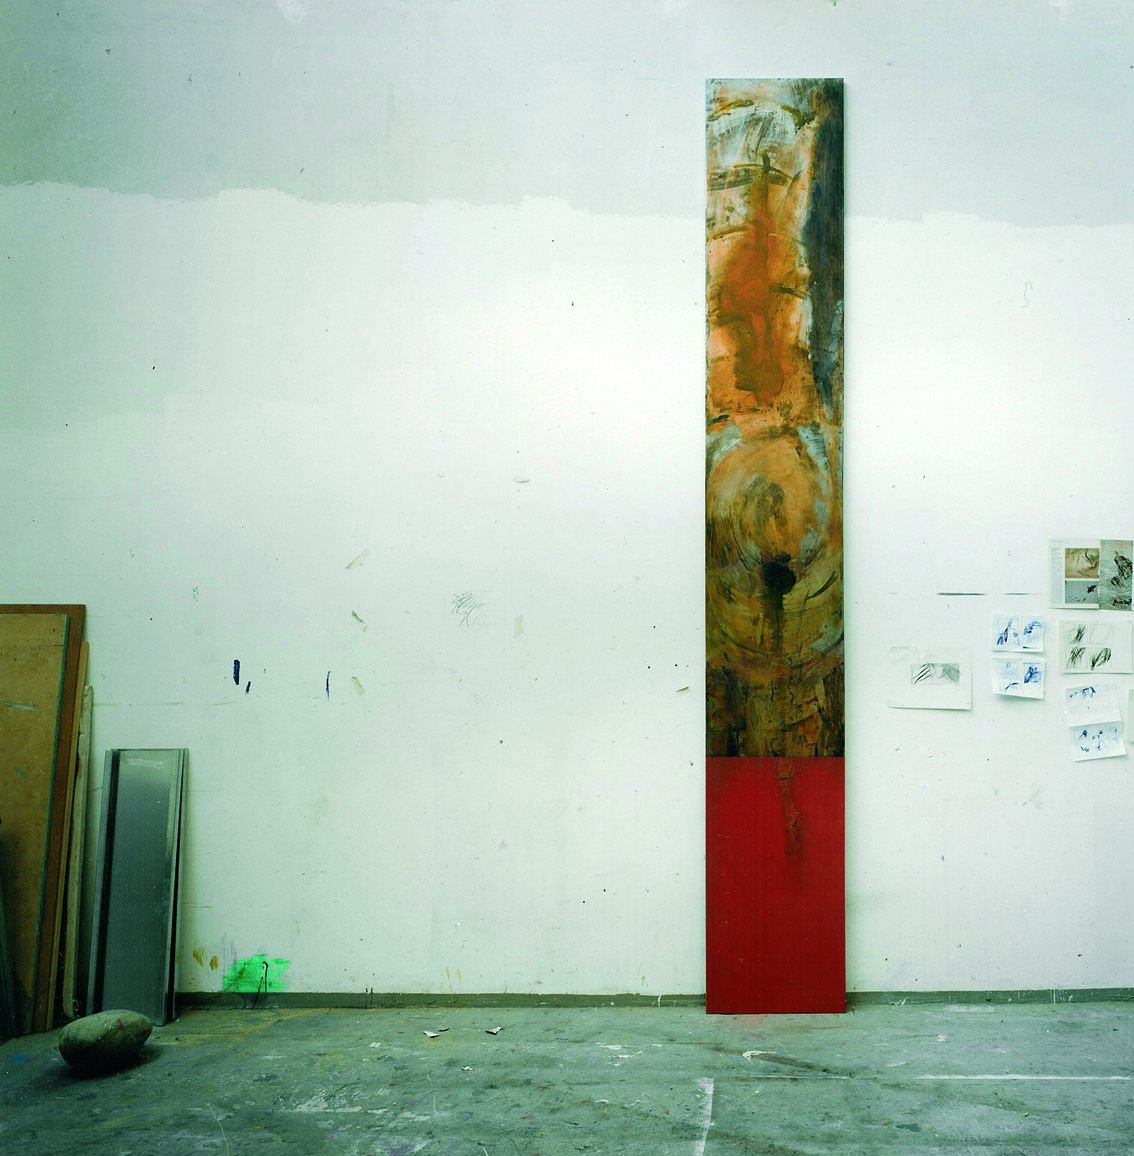 Metall Ätzung , Atelier Situation  400 x 90 cm